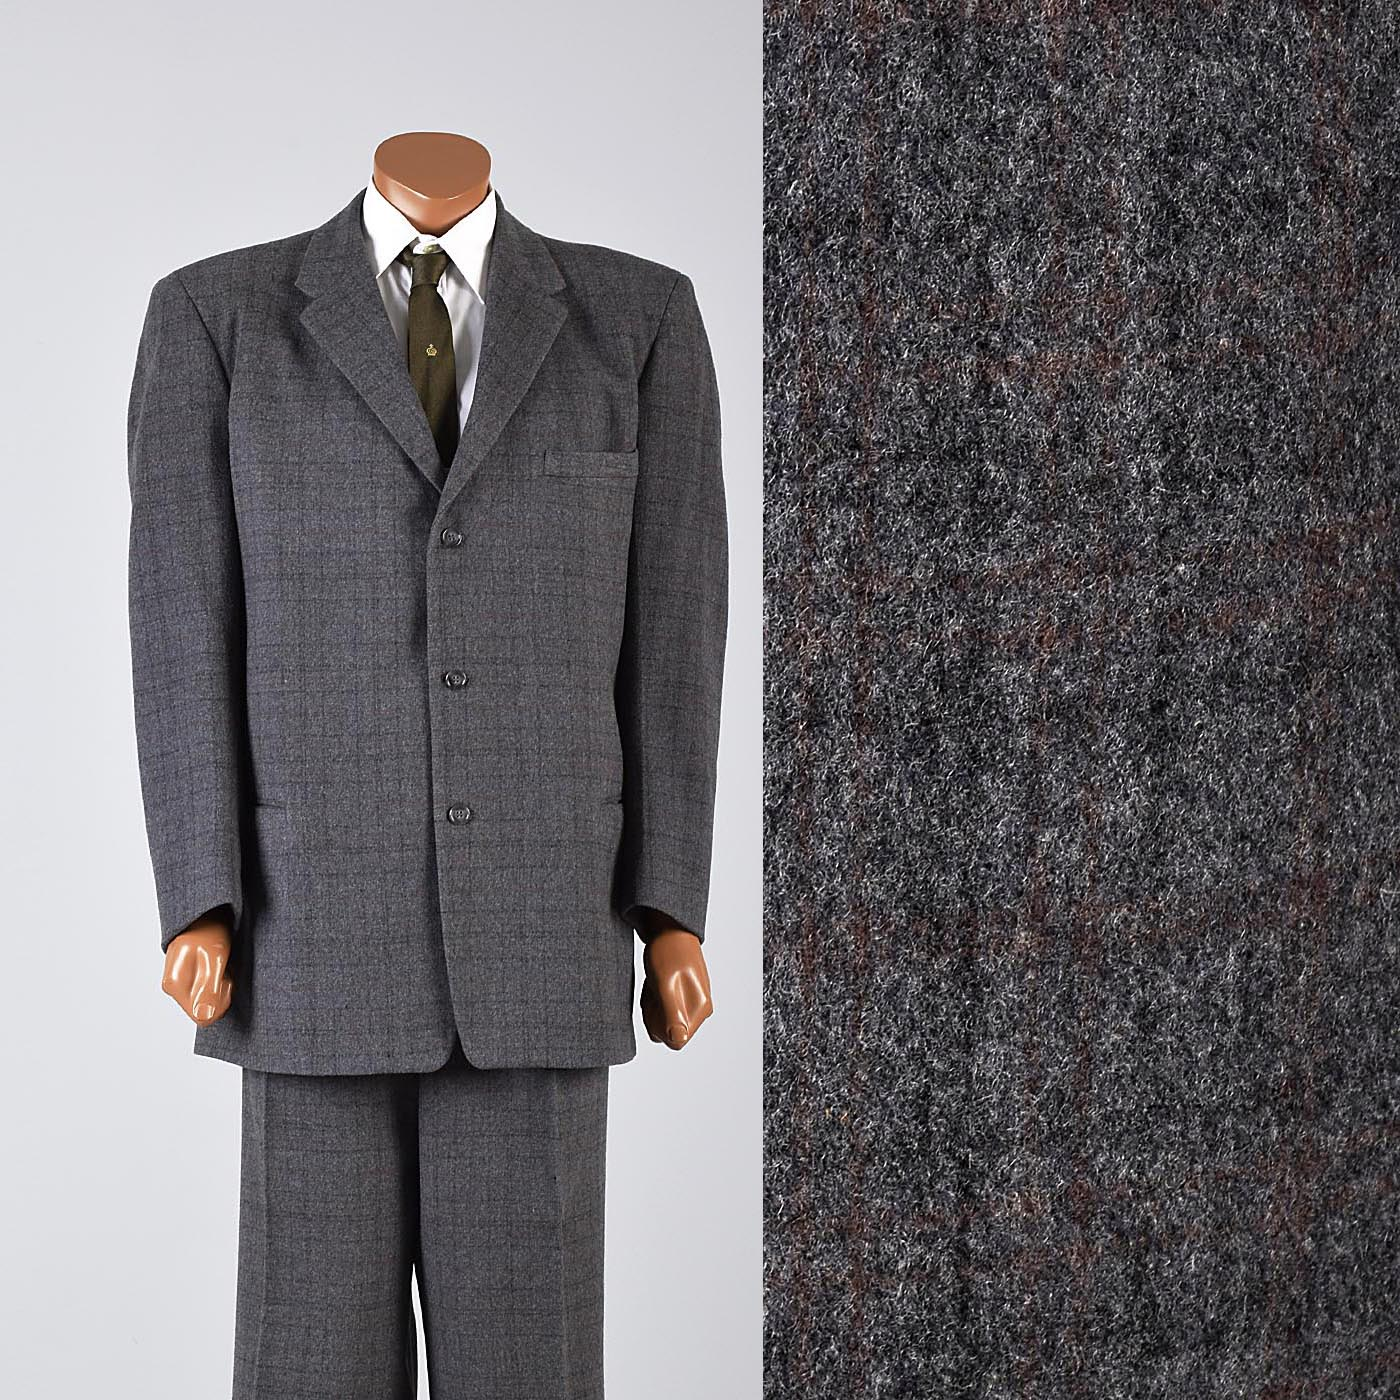 1950s Men's Winter Suit in Very Heavy Weight Wool